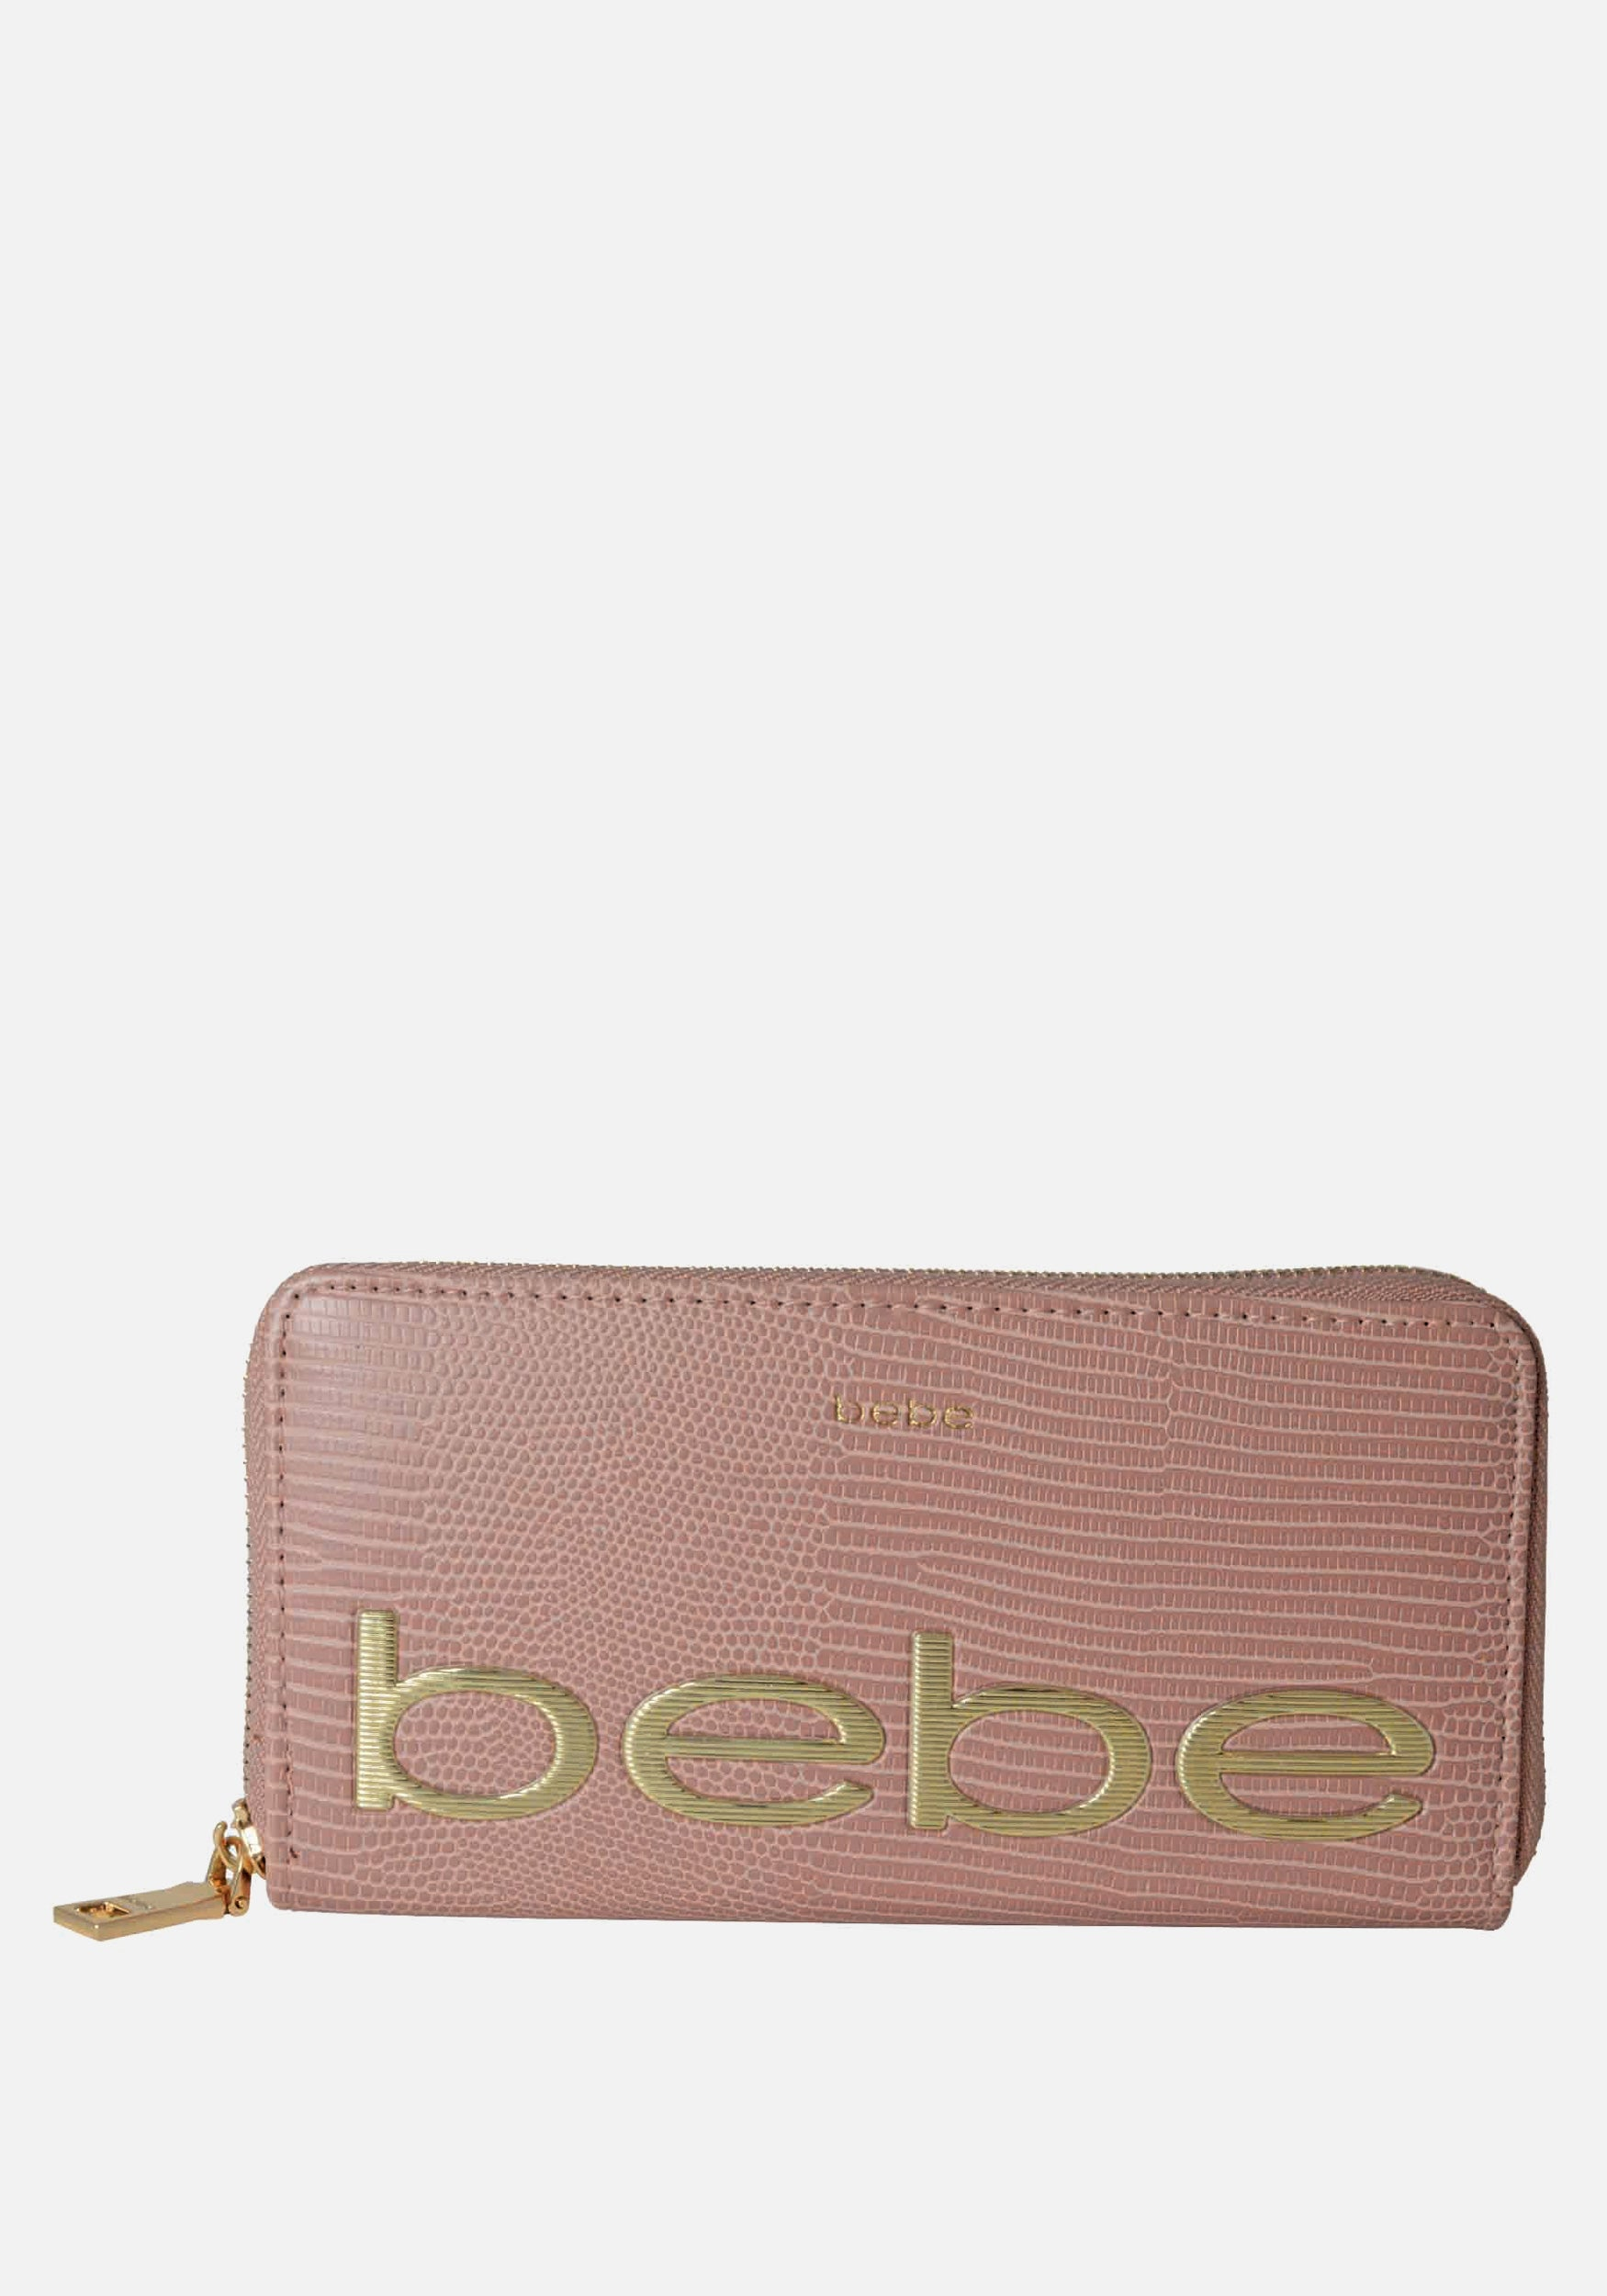 Bebe Women's Fabiola Stamped Lizard Wallet in Dusty Rose Polyester